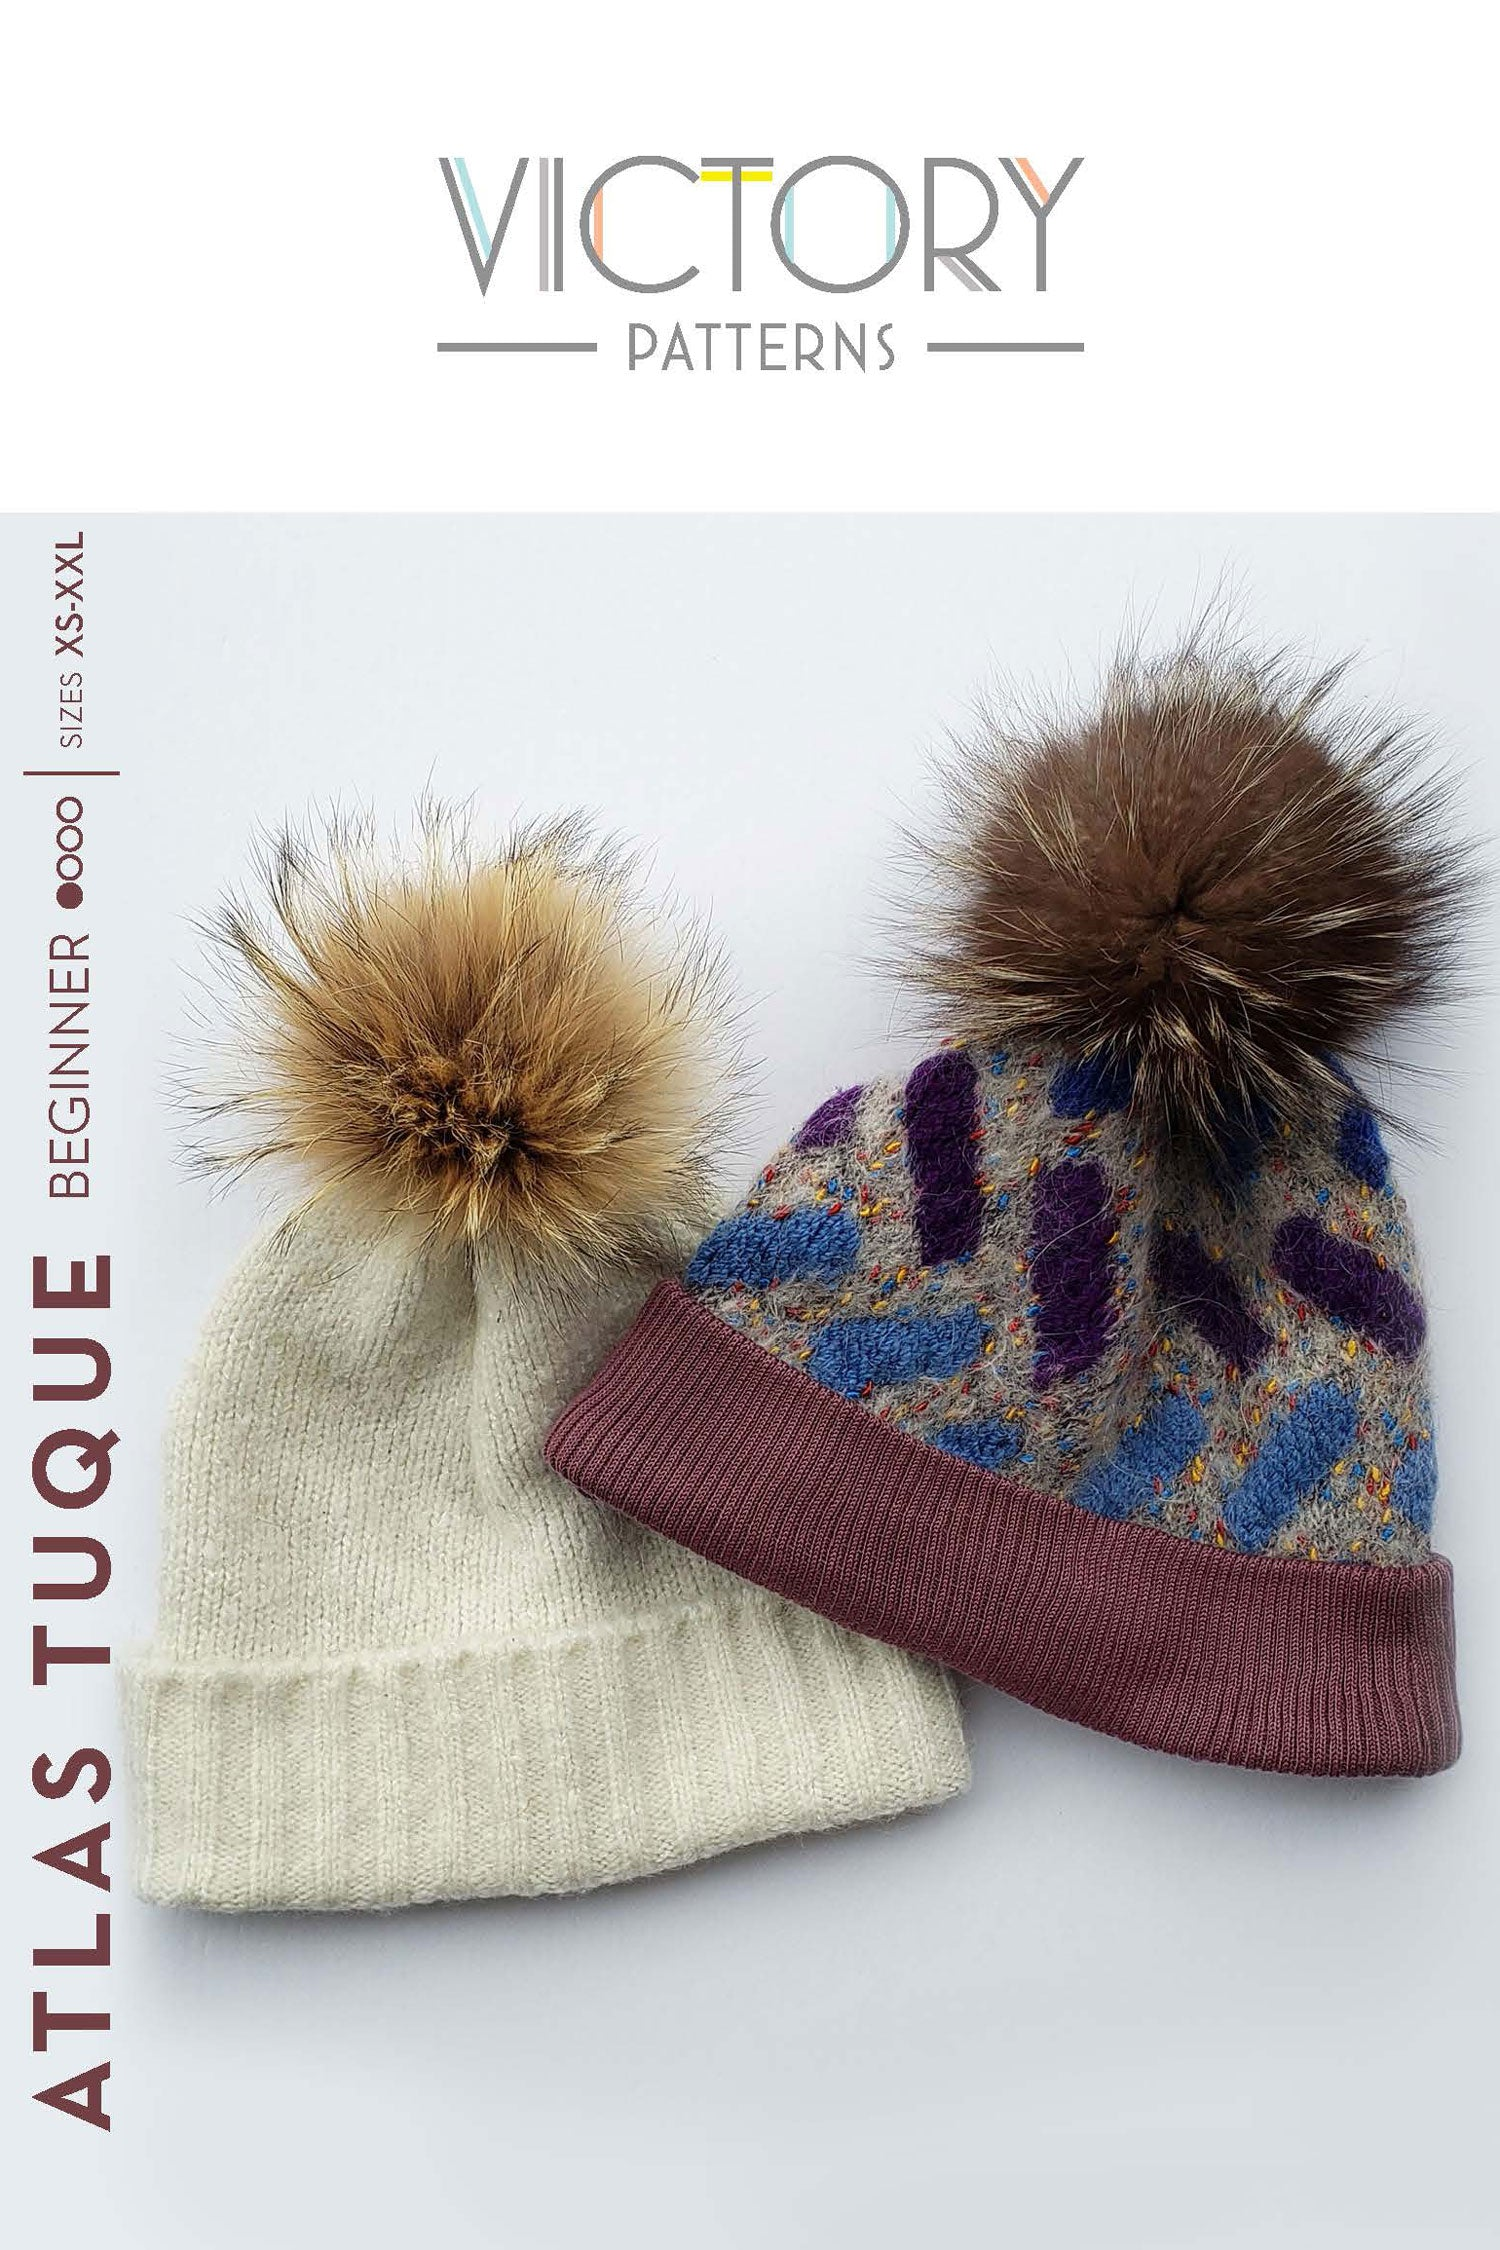 Atlas Tuque PDF - Victory Patterns